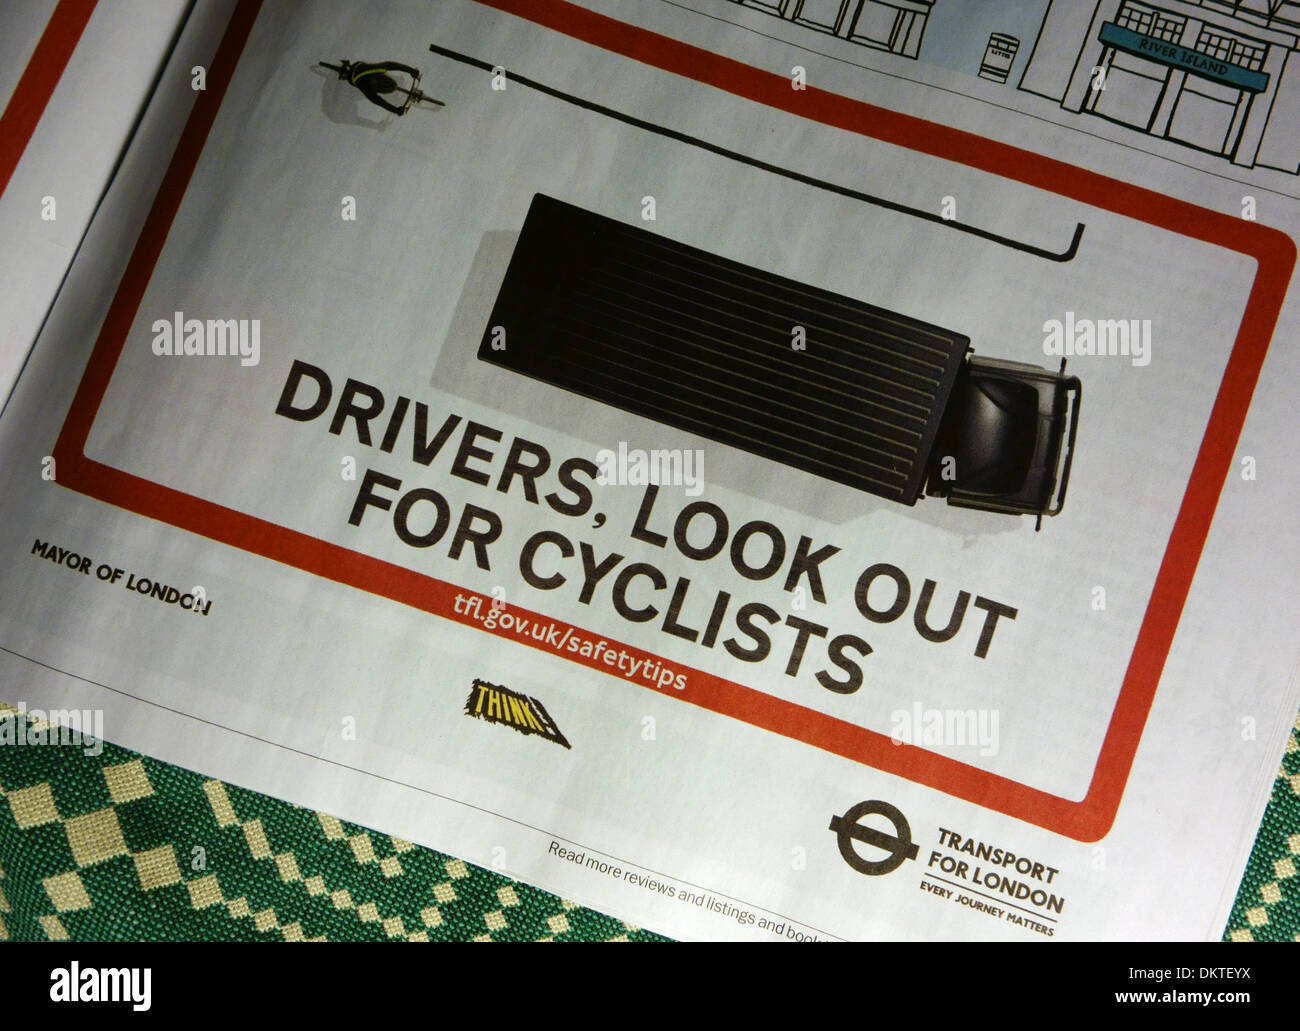 Cycling safety advert in Time Out magazine, London - Stock Image